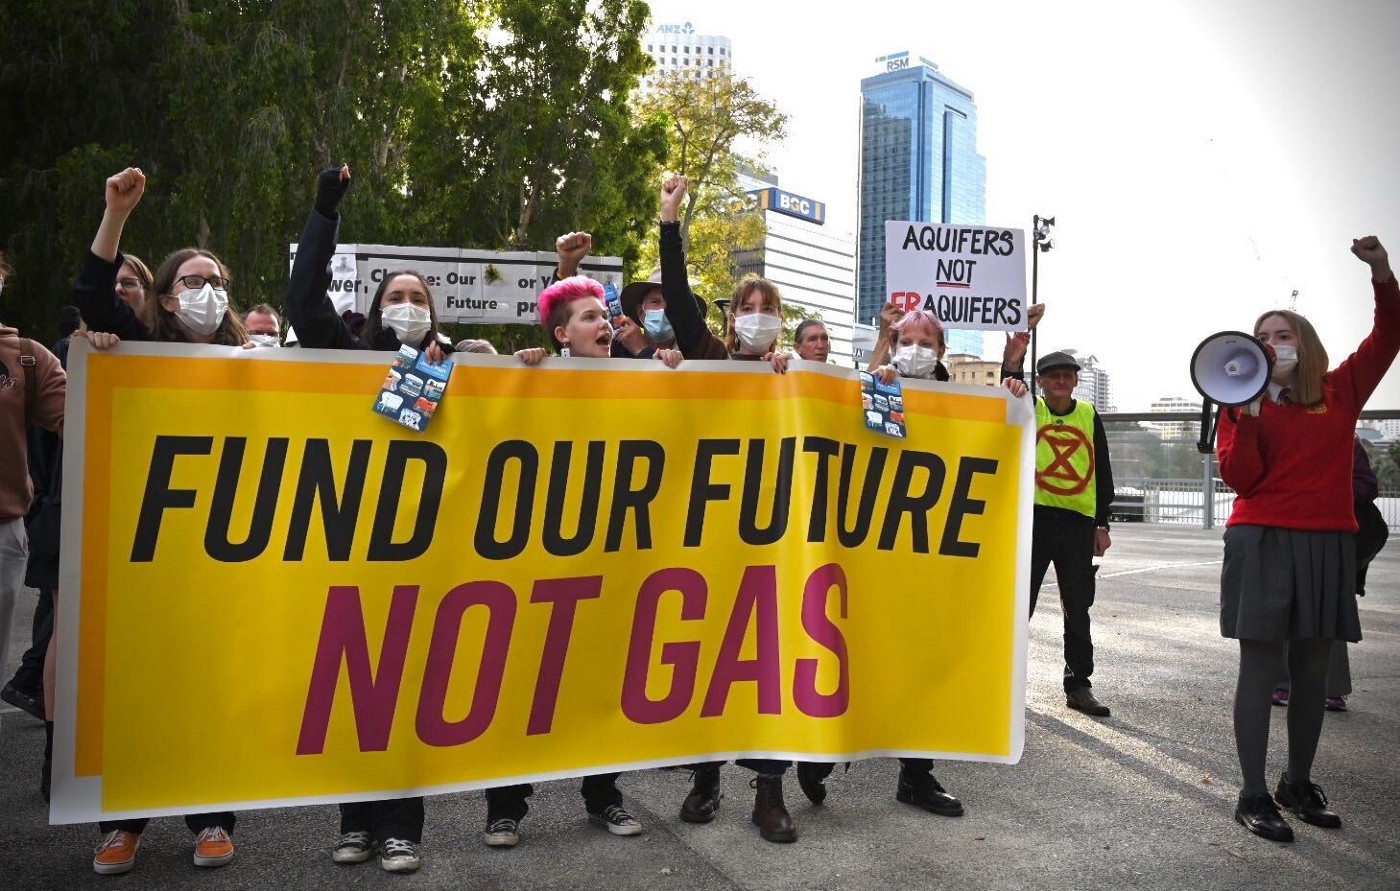 5 students holding a yellow banner that reads: Fund our future, Not gas. Also a student to right holding a megaphone.